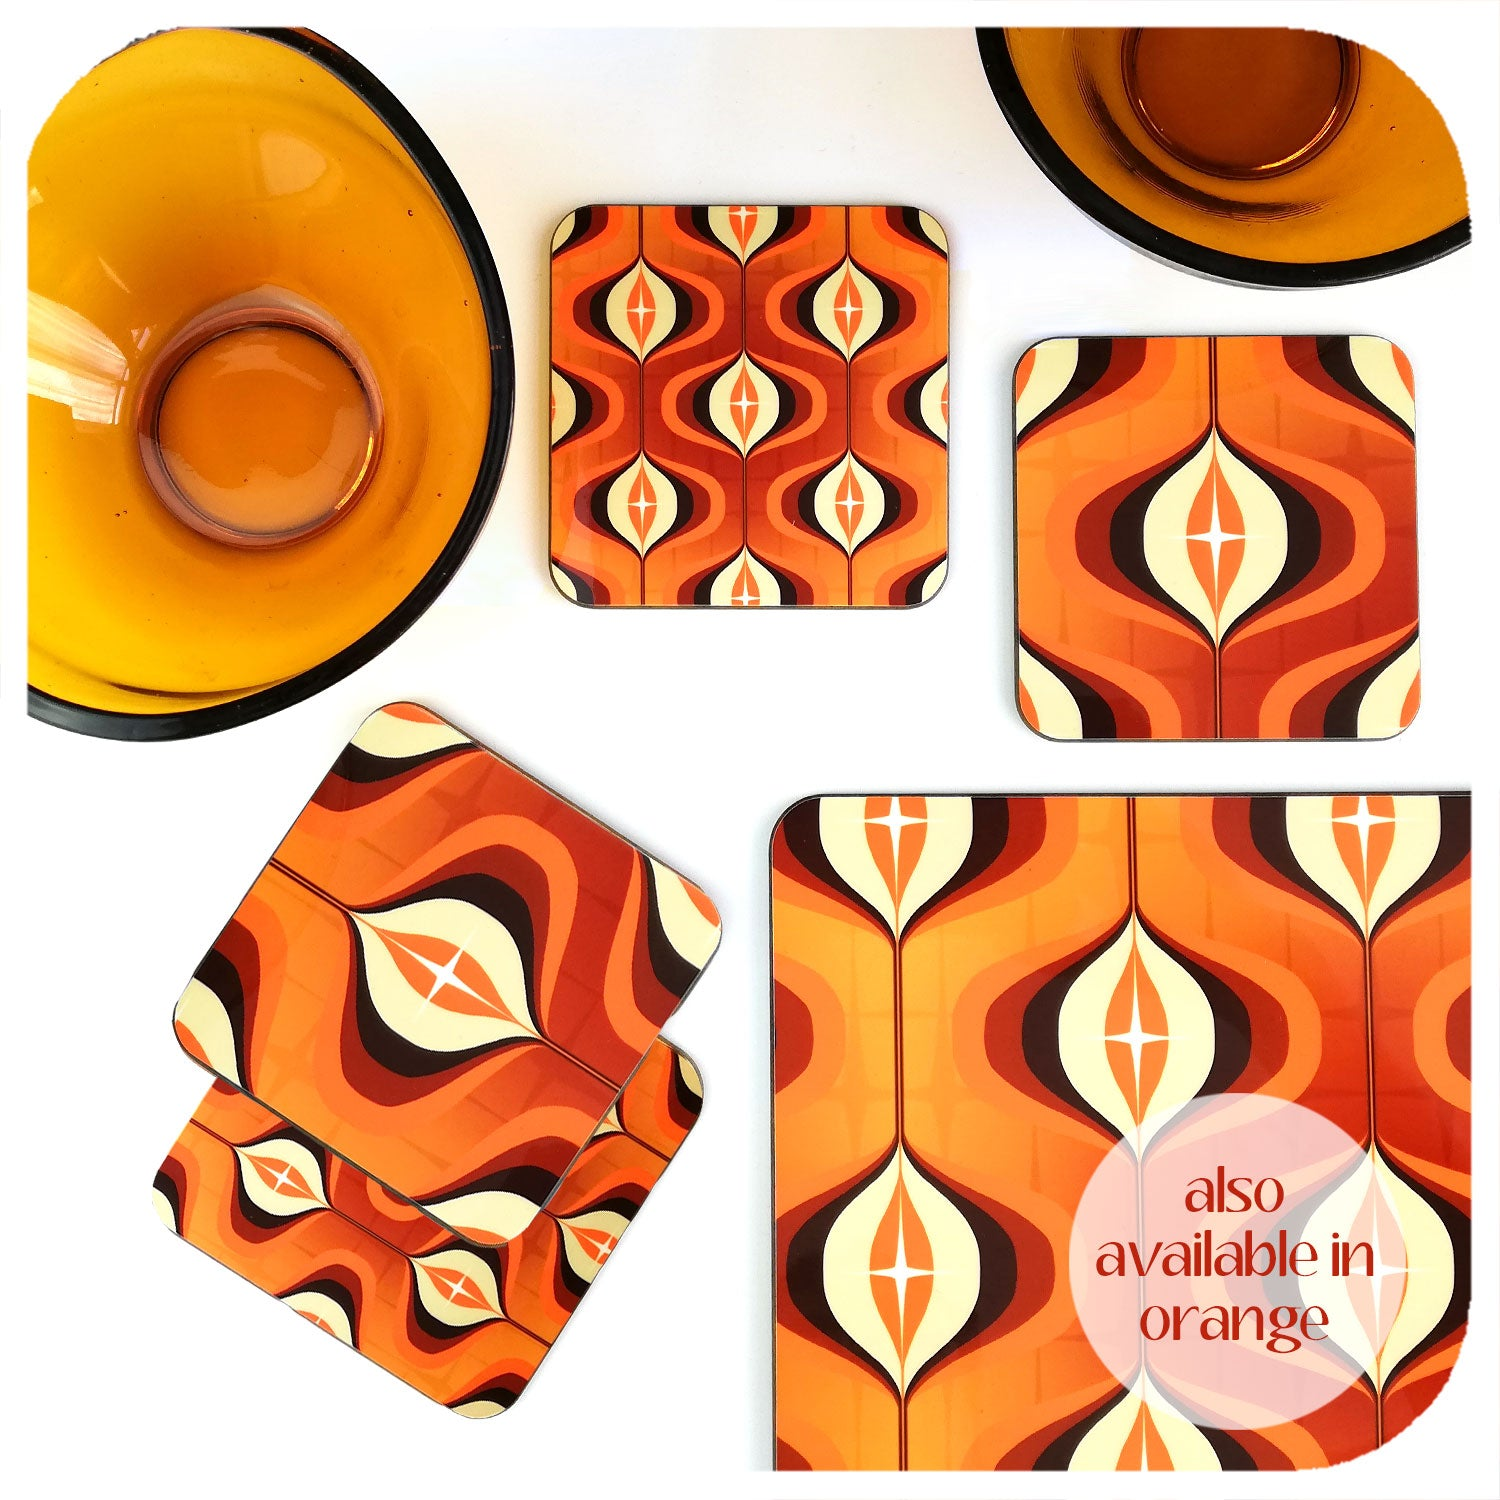 70s Op Art coasters and placemat in Orange | The Inkabilly Emporium